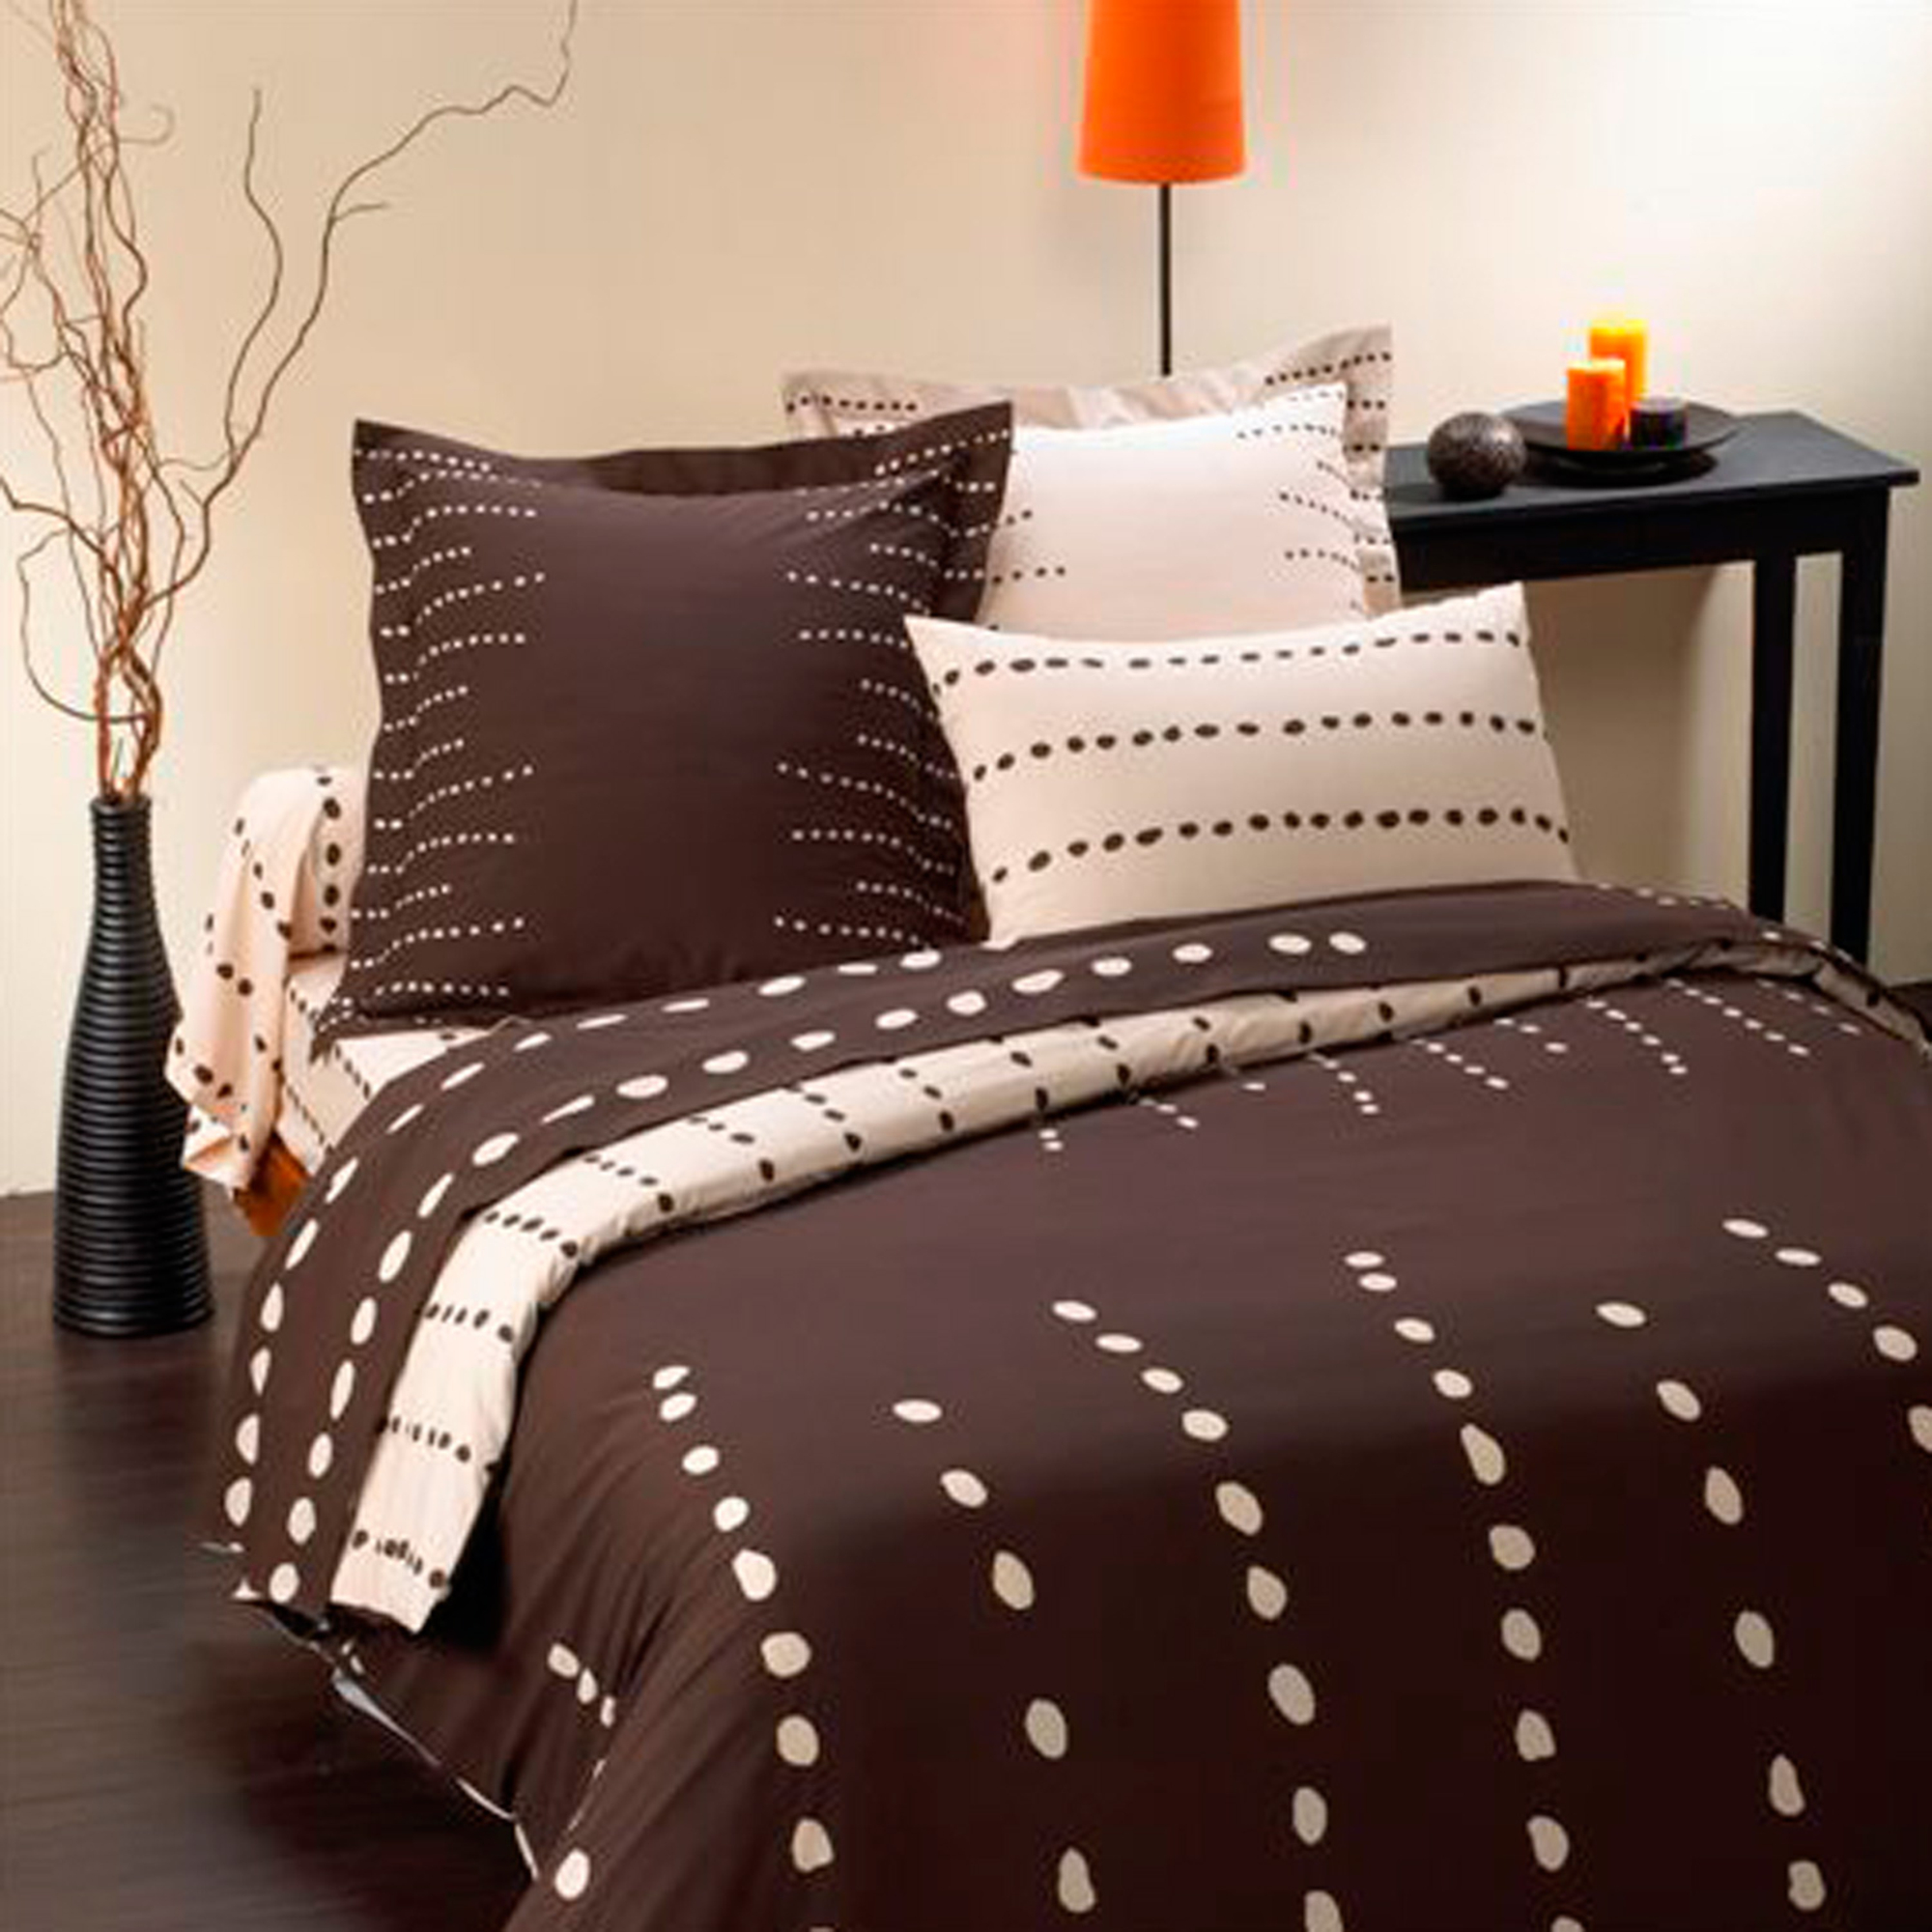 parure de drap 2 pers galet marron 240 x 300 cm frais. Black Bedroom Furniture Sets. Home Design Ideas